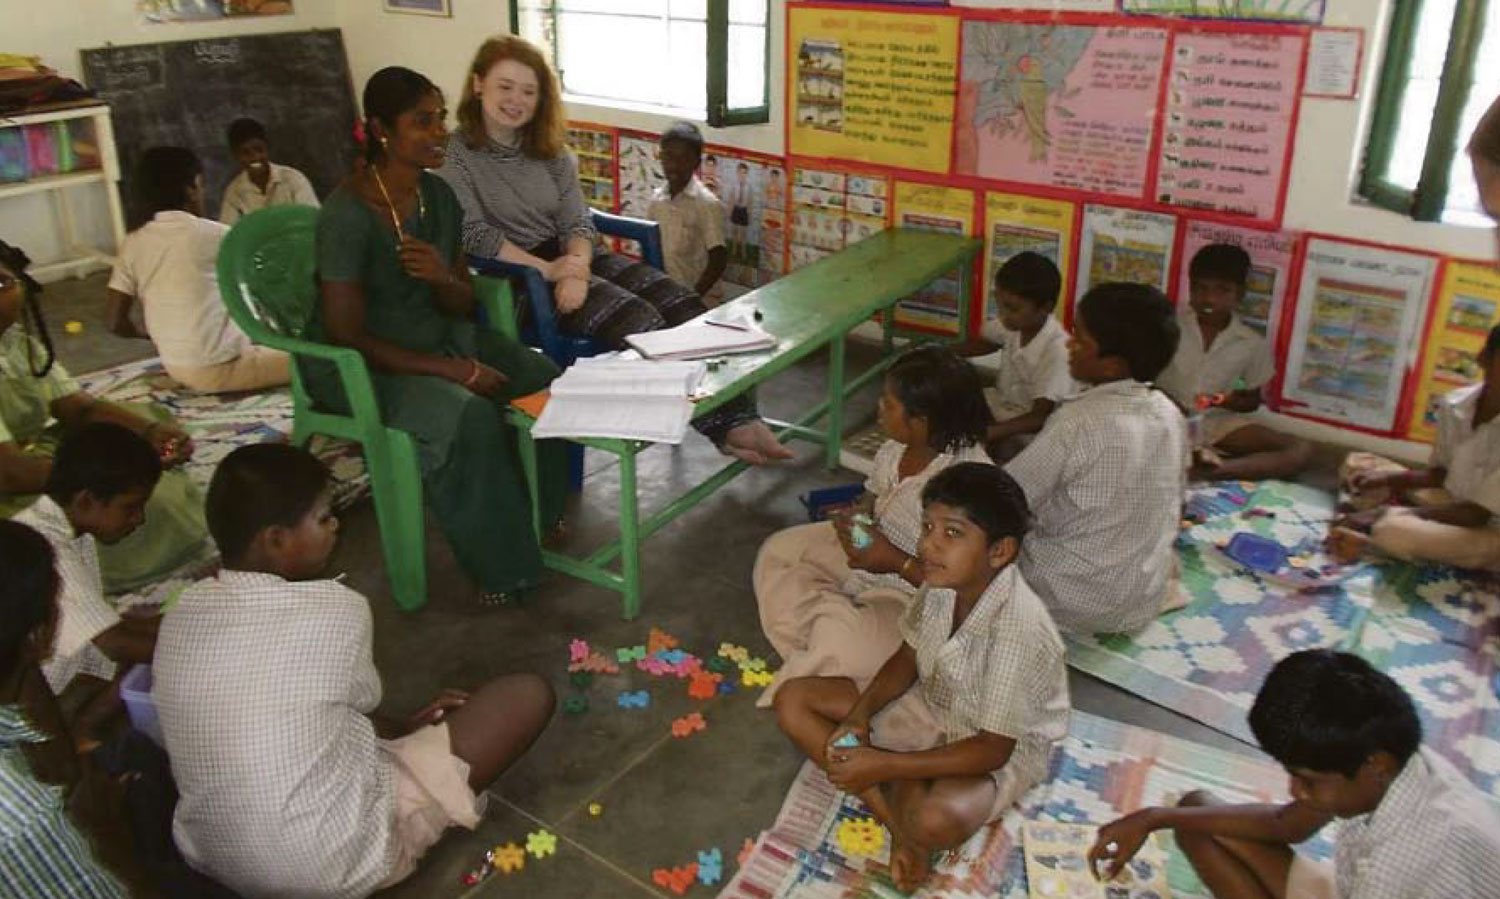 Photo: Mary Crotty (former St. Mary's Menston pupil) volunteering with the Sylvia Wright Trust in India.  Read her report